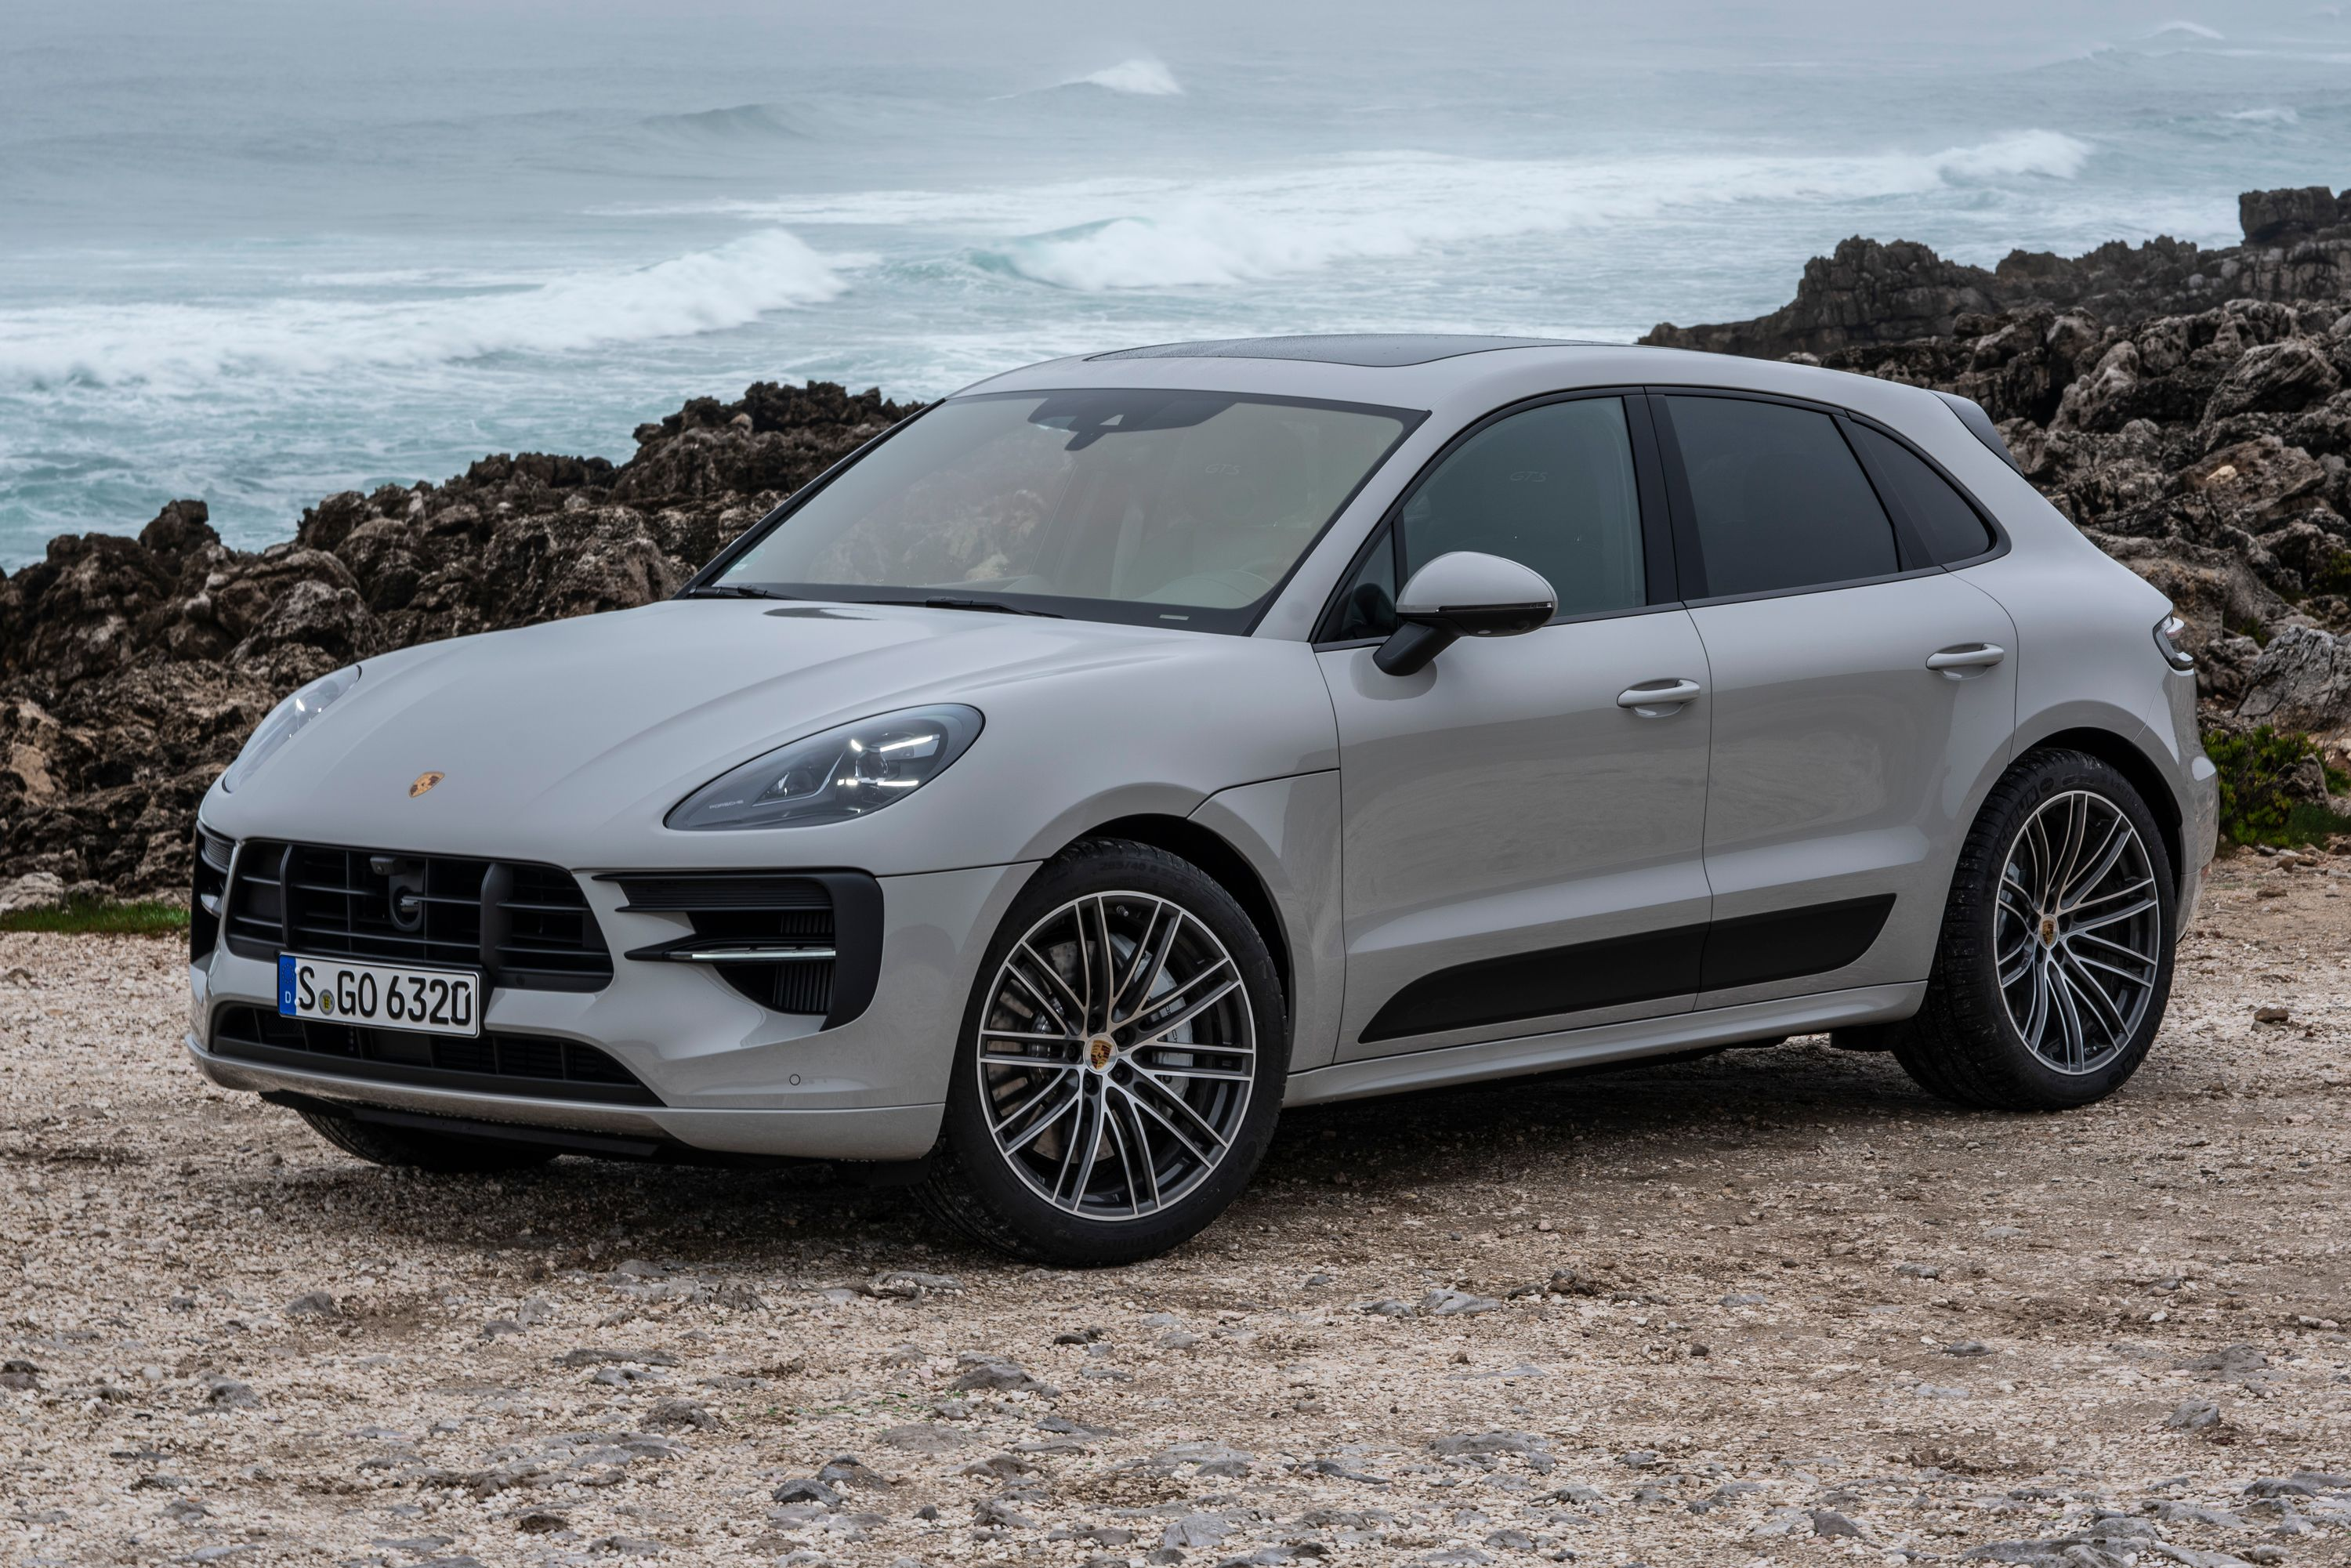 2021 Porsche Macan Review Pricing And Specs